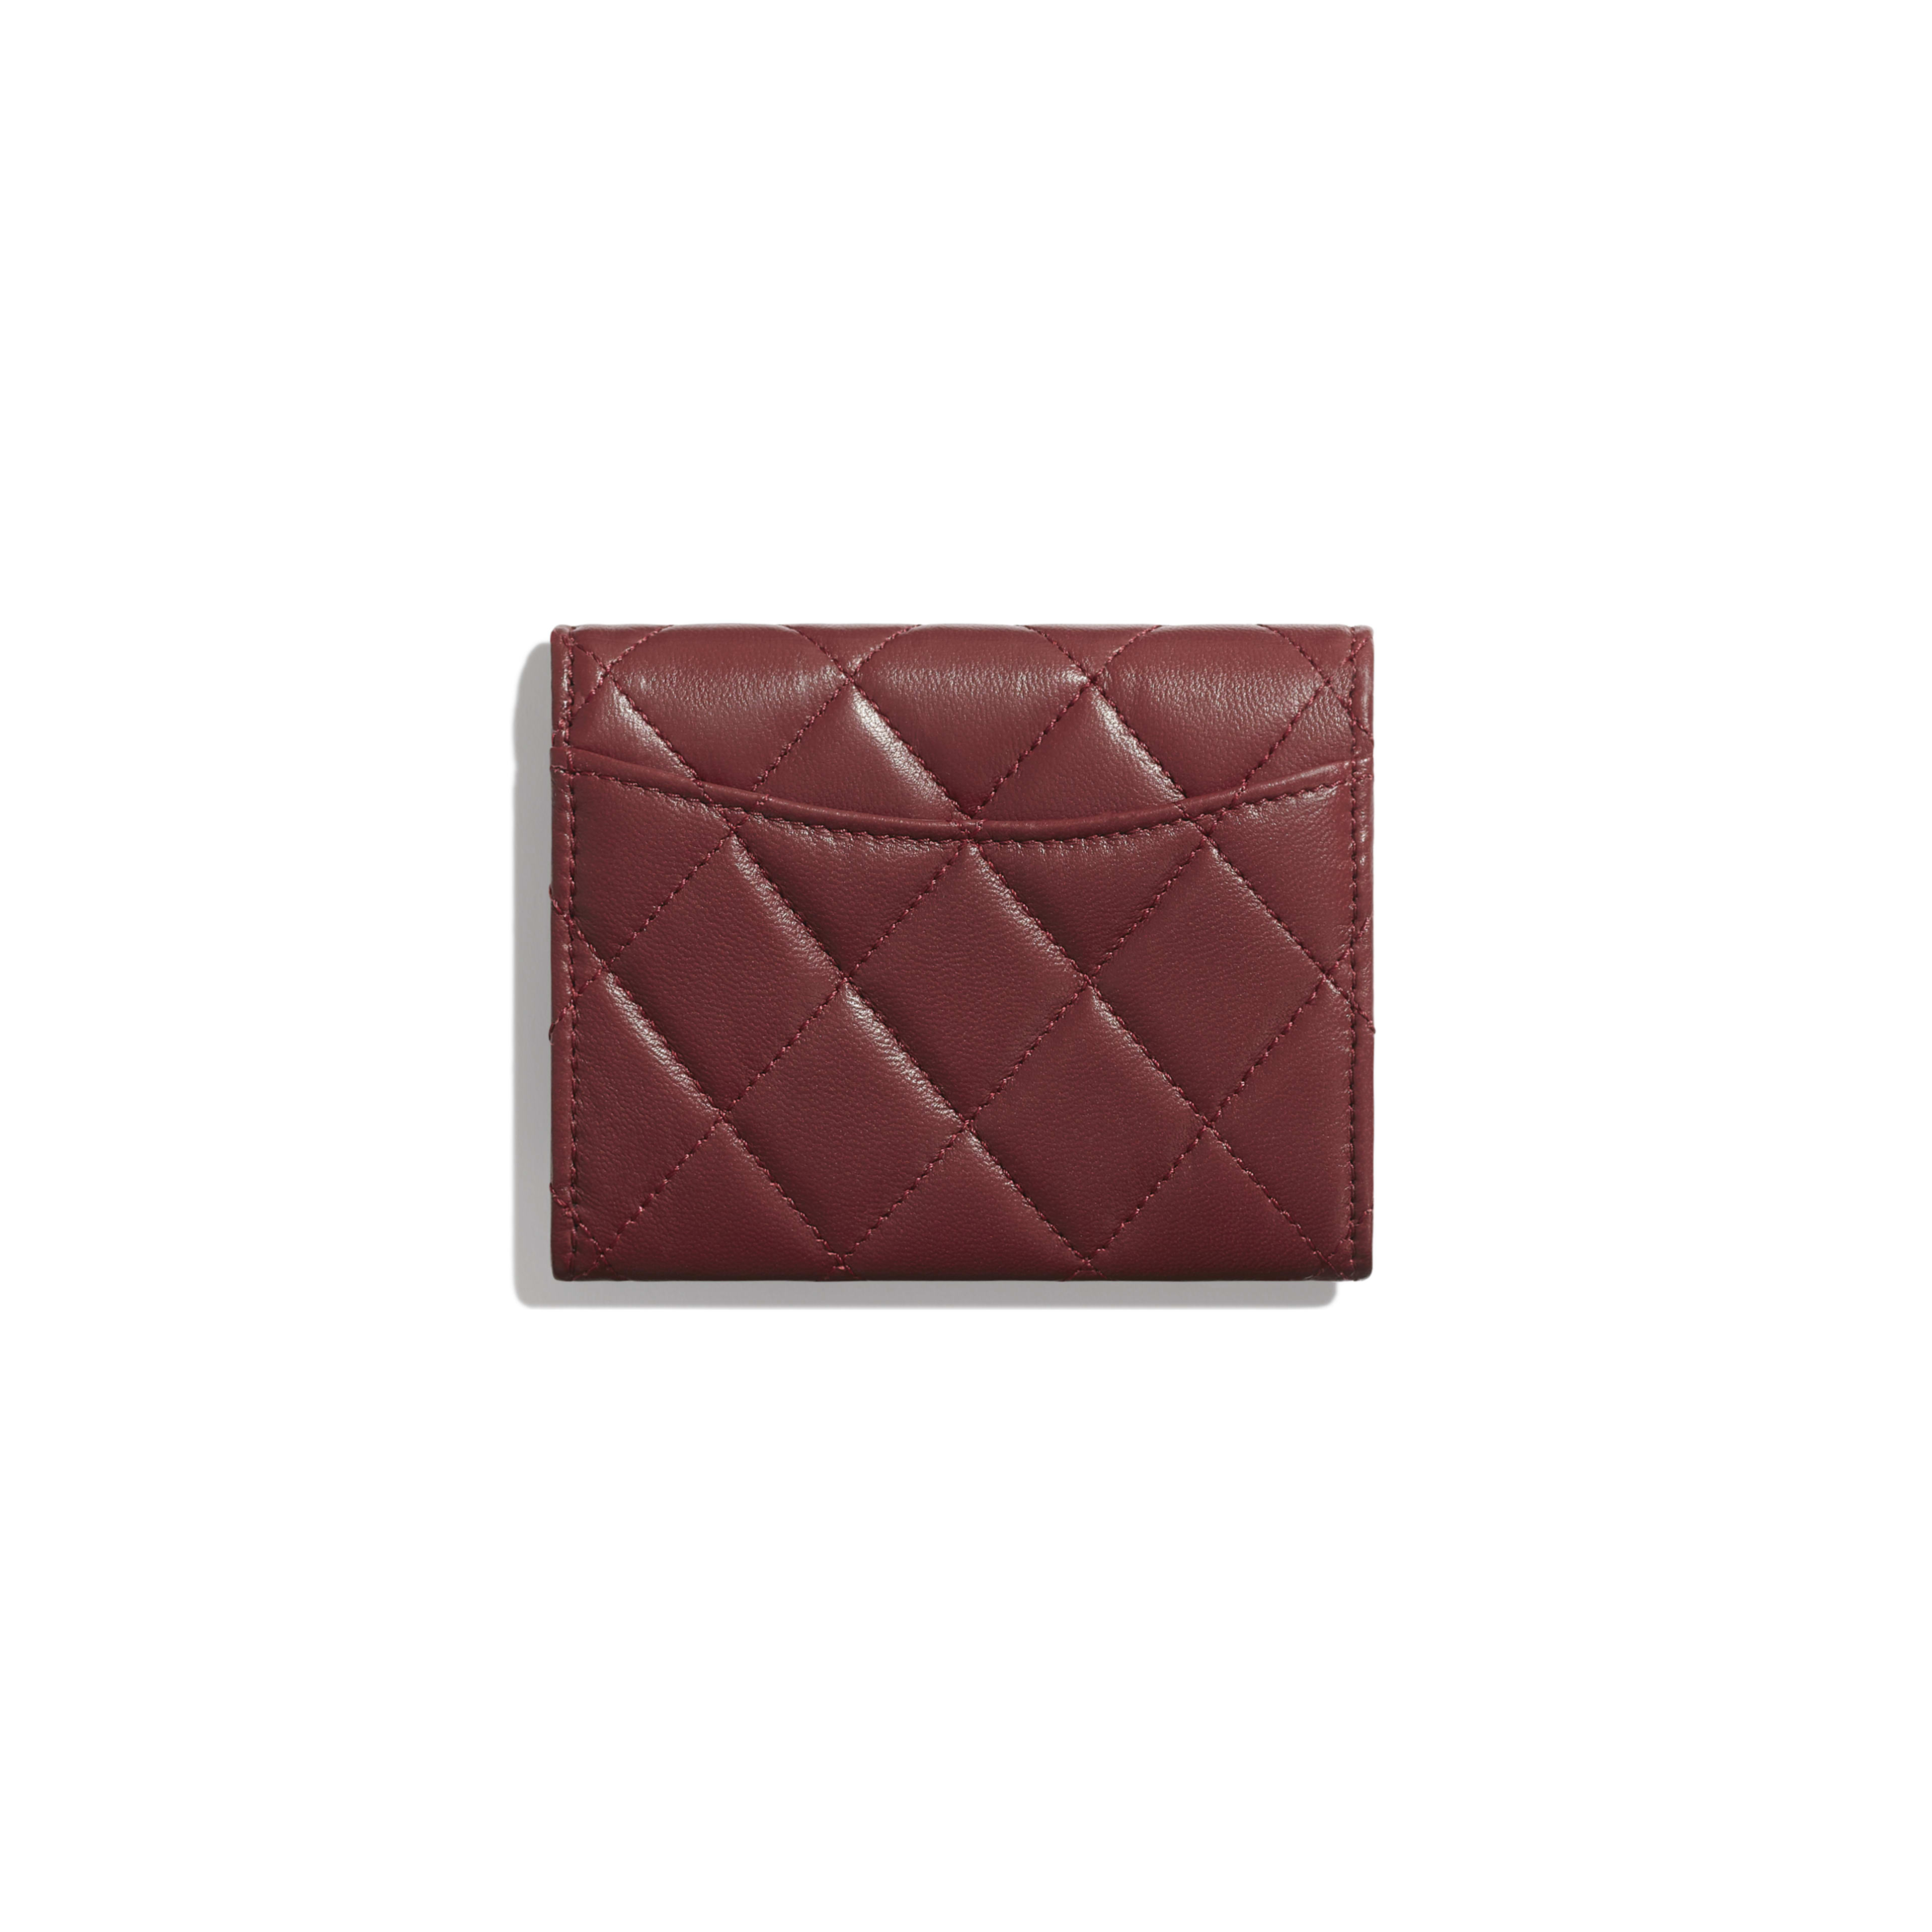 Classic Flap Coin Purse - Burgundy - Lambskin - Alternative view - see full sized version